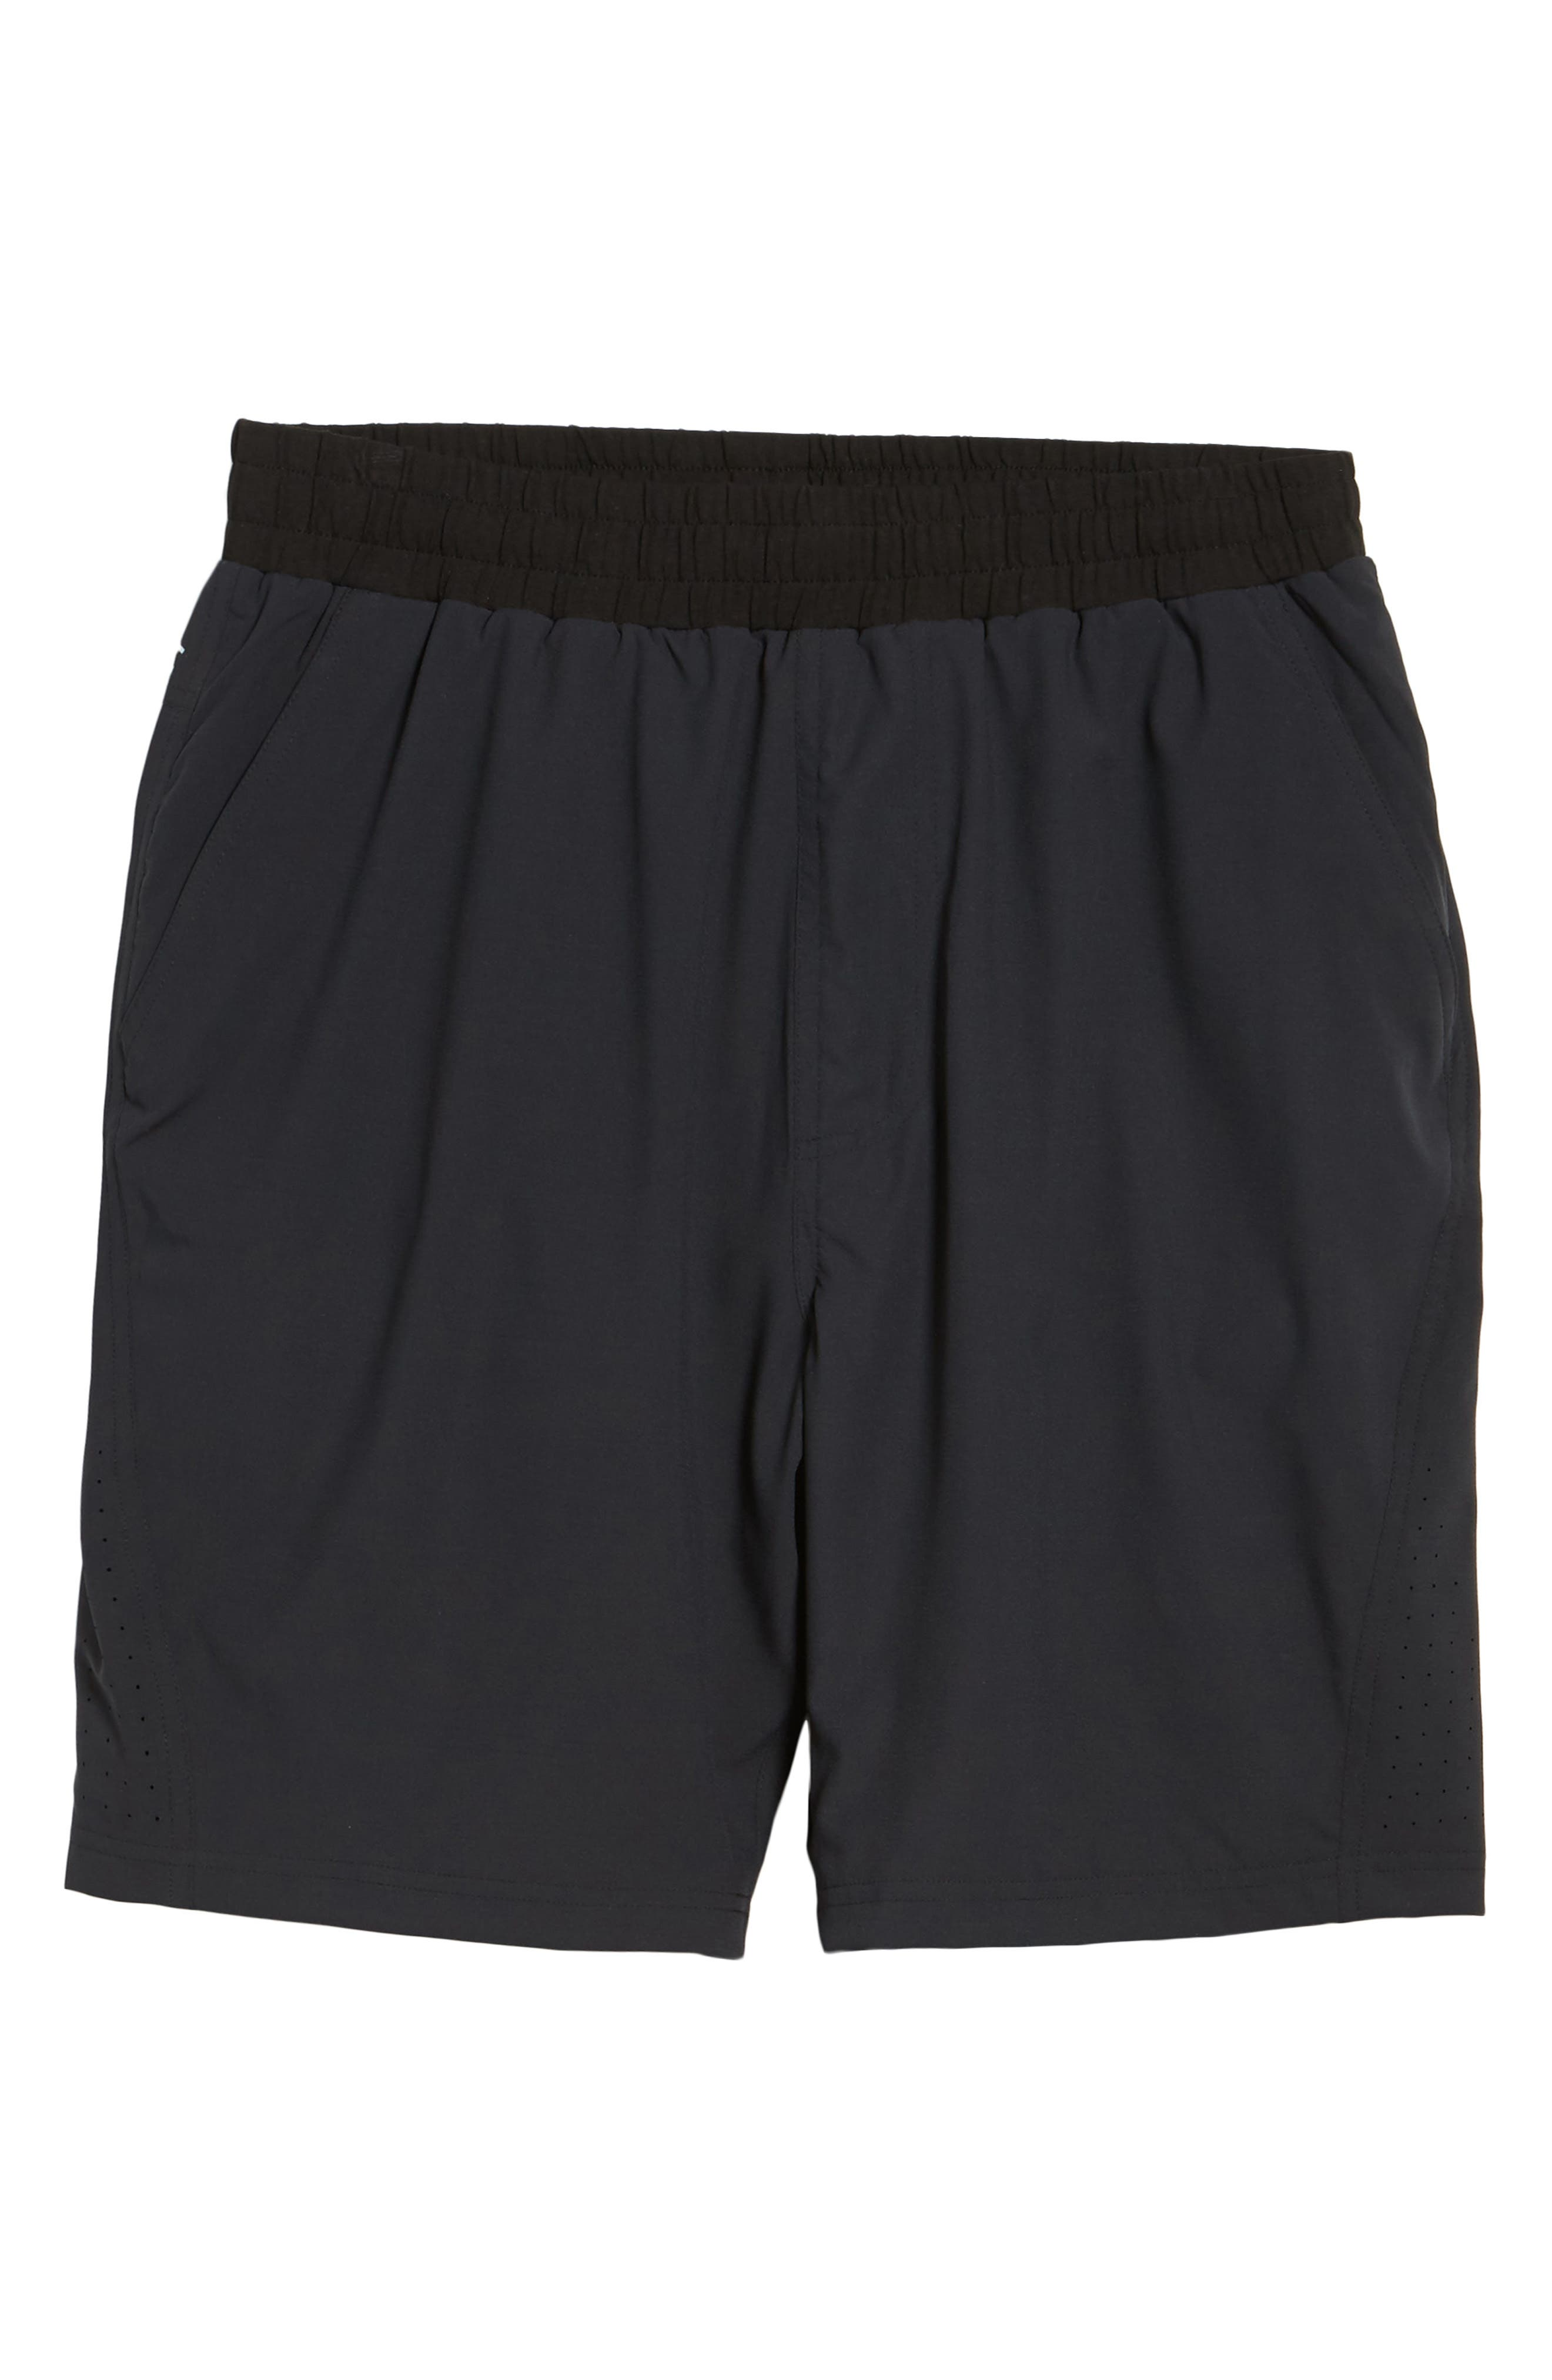 Charge Water Resistant Athletic Shorts,                             Alternate thumbnail 6, color,                             BLACK